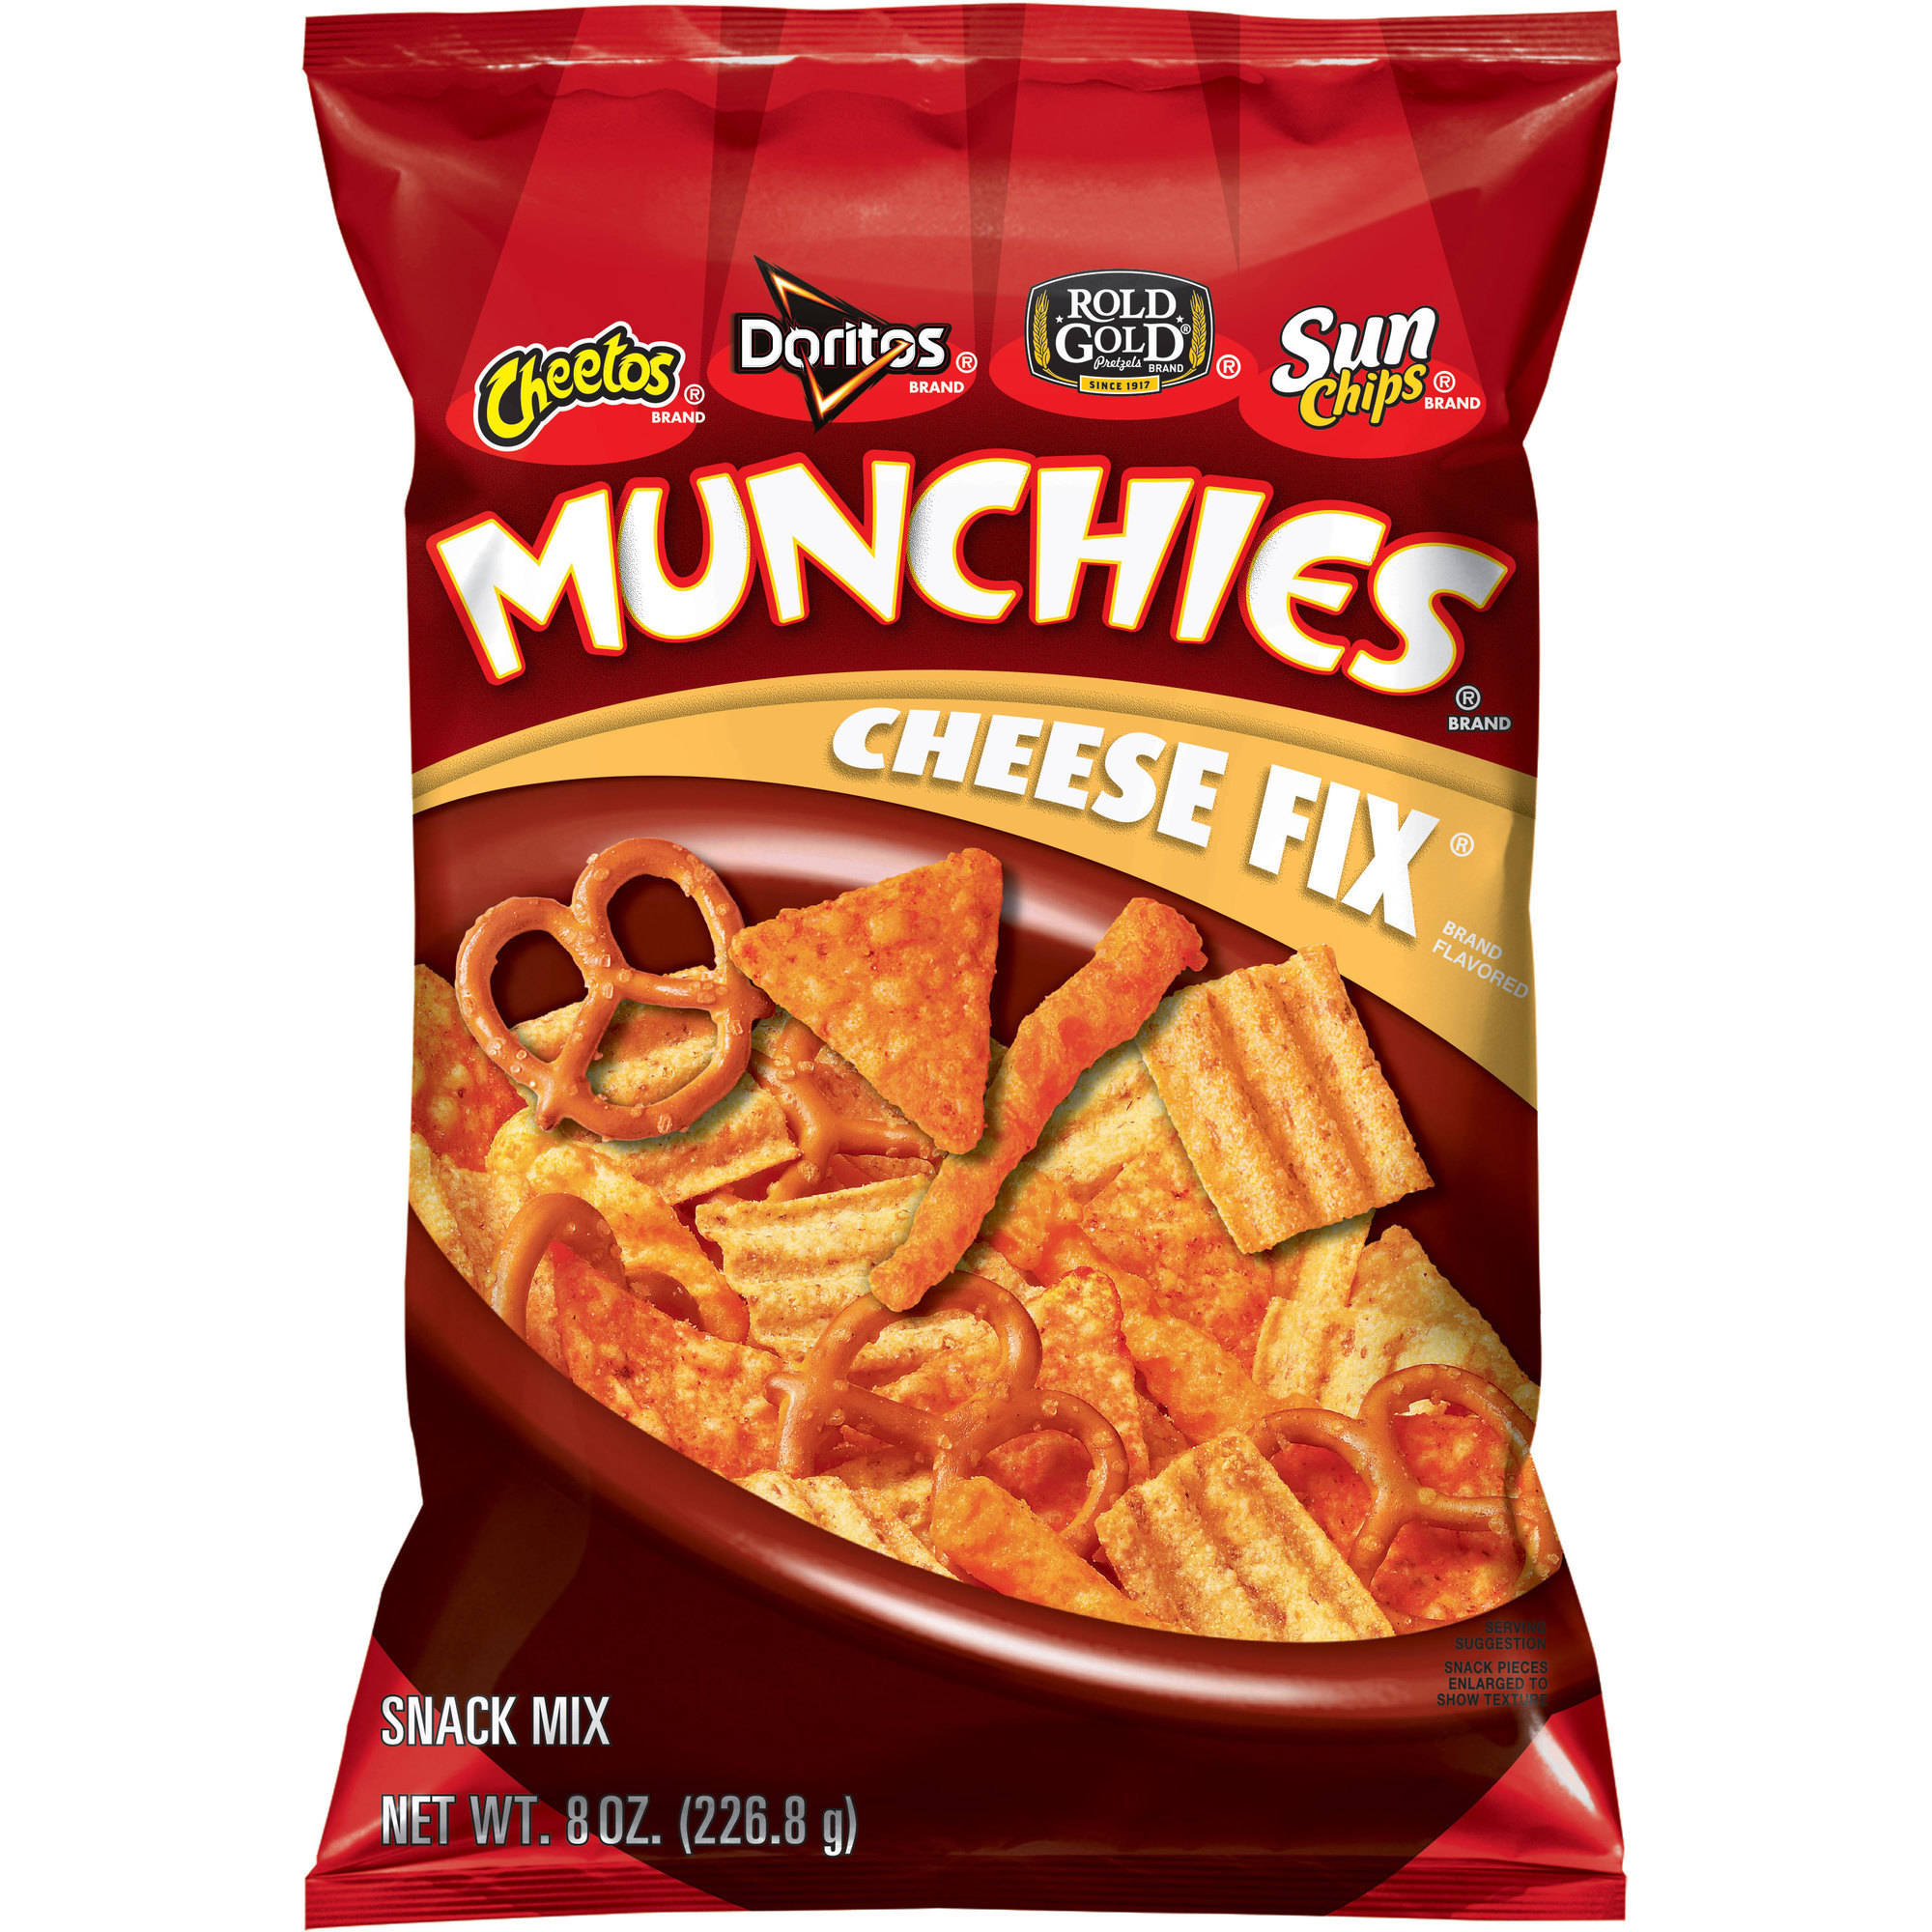 Munchies Cheese Fix Snack Mix, 8 oz.